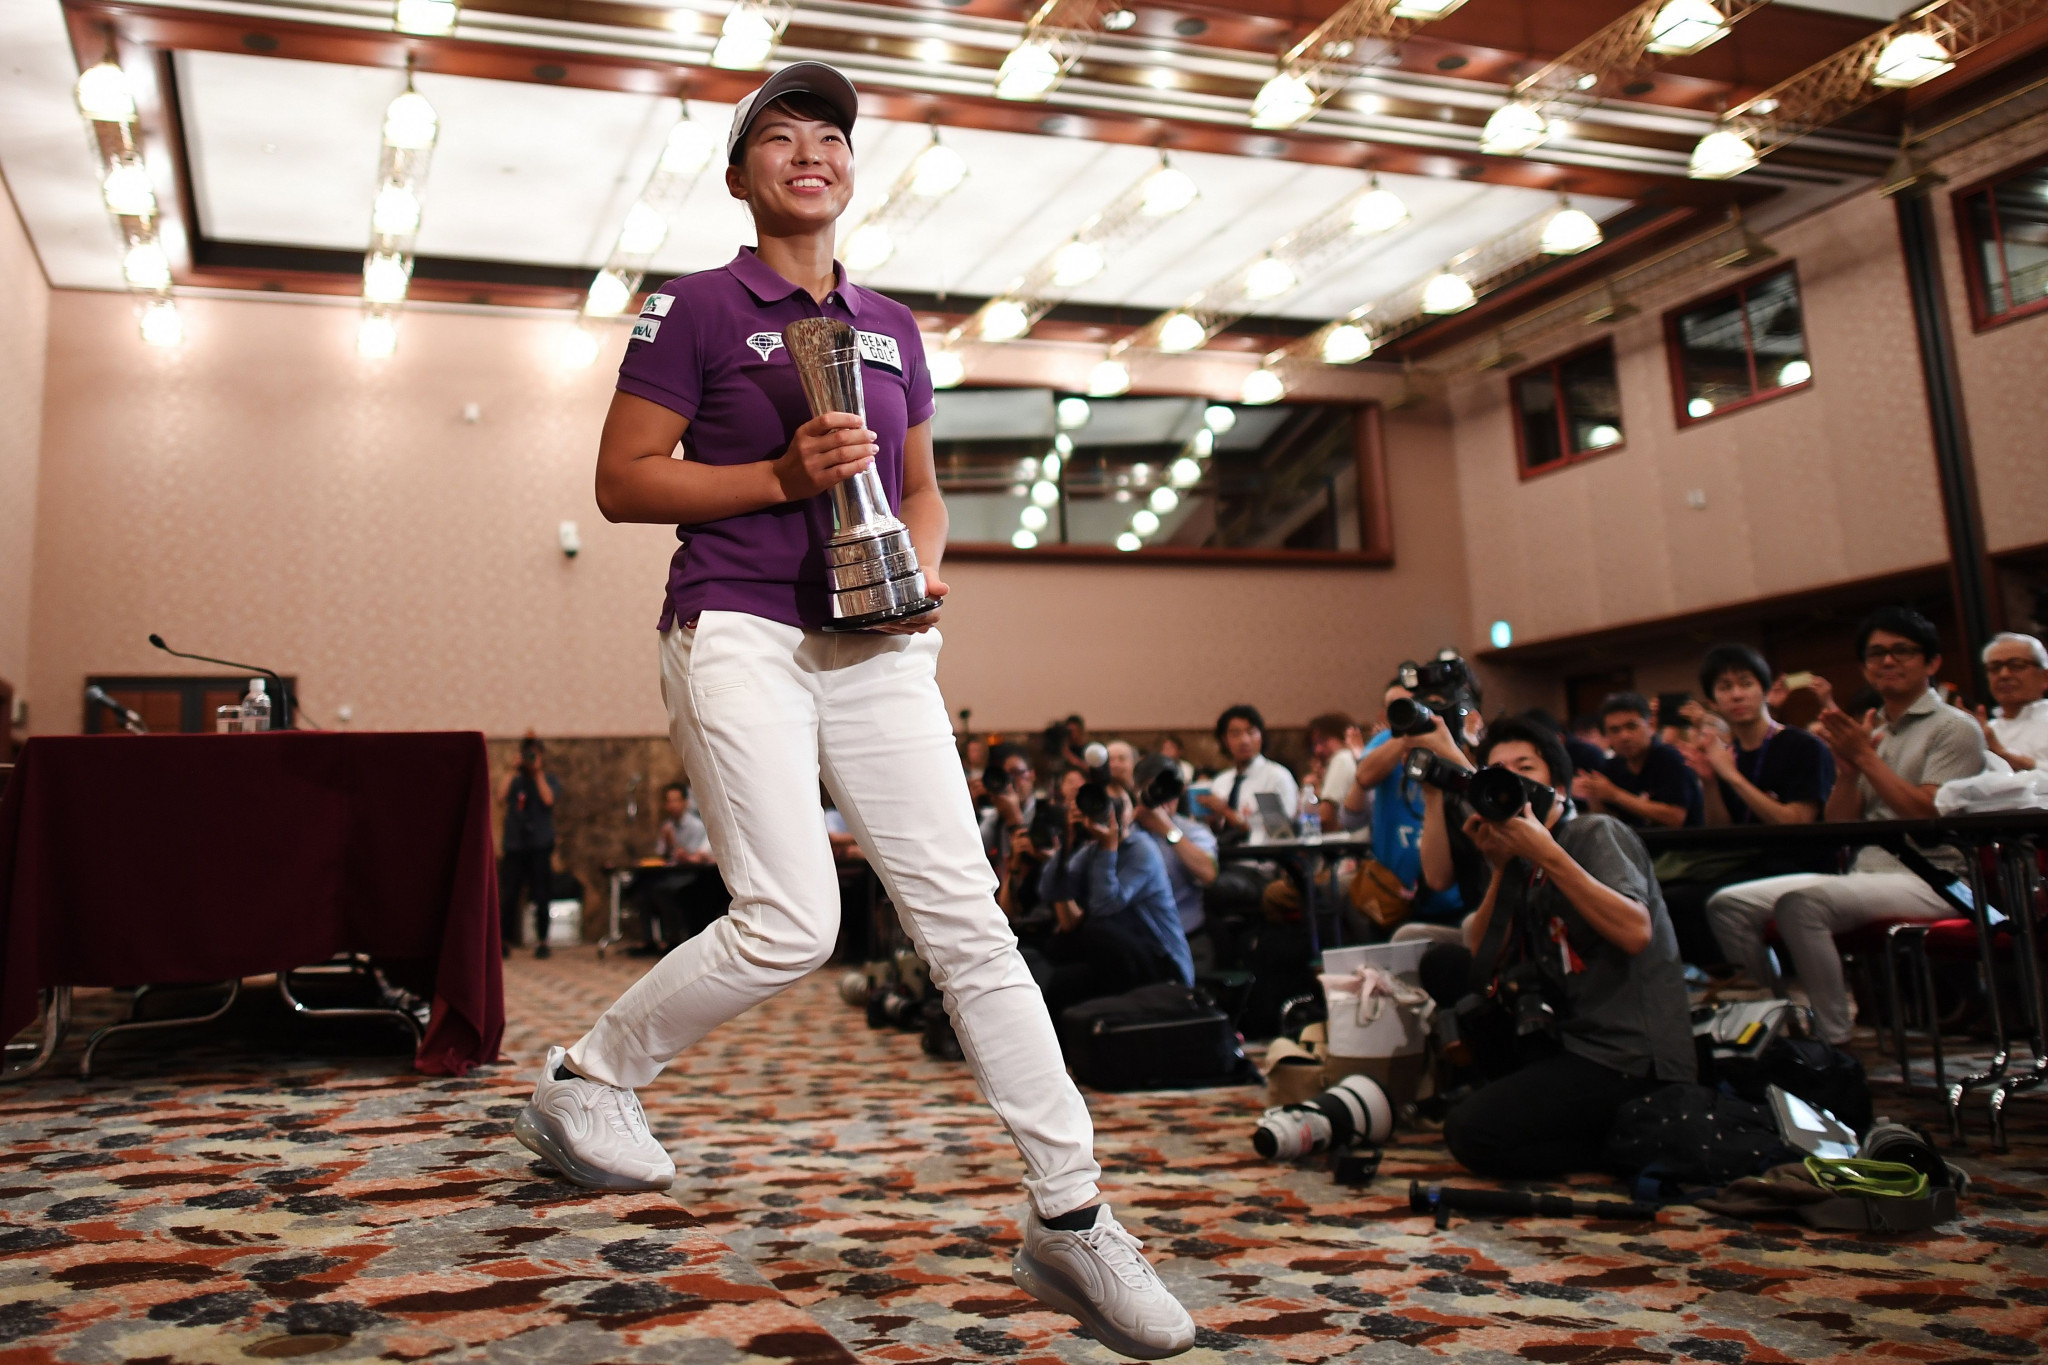 The 20-year-old Hinako Shibuno became the first Japanese golfer in 42 years to win an overseas major when she claimed victory at the British Open in Woburn on Sunday ©Getty Images